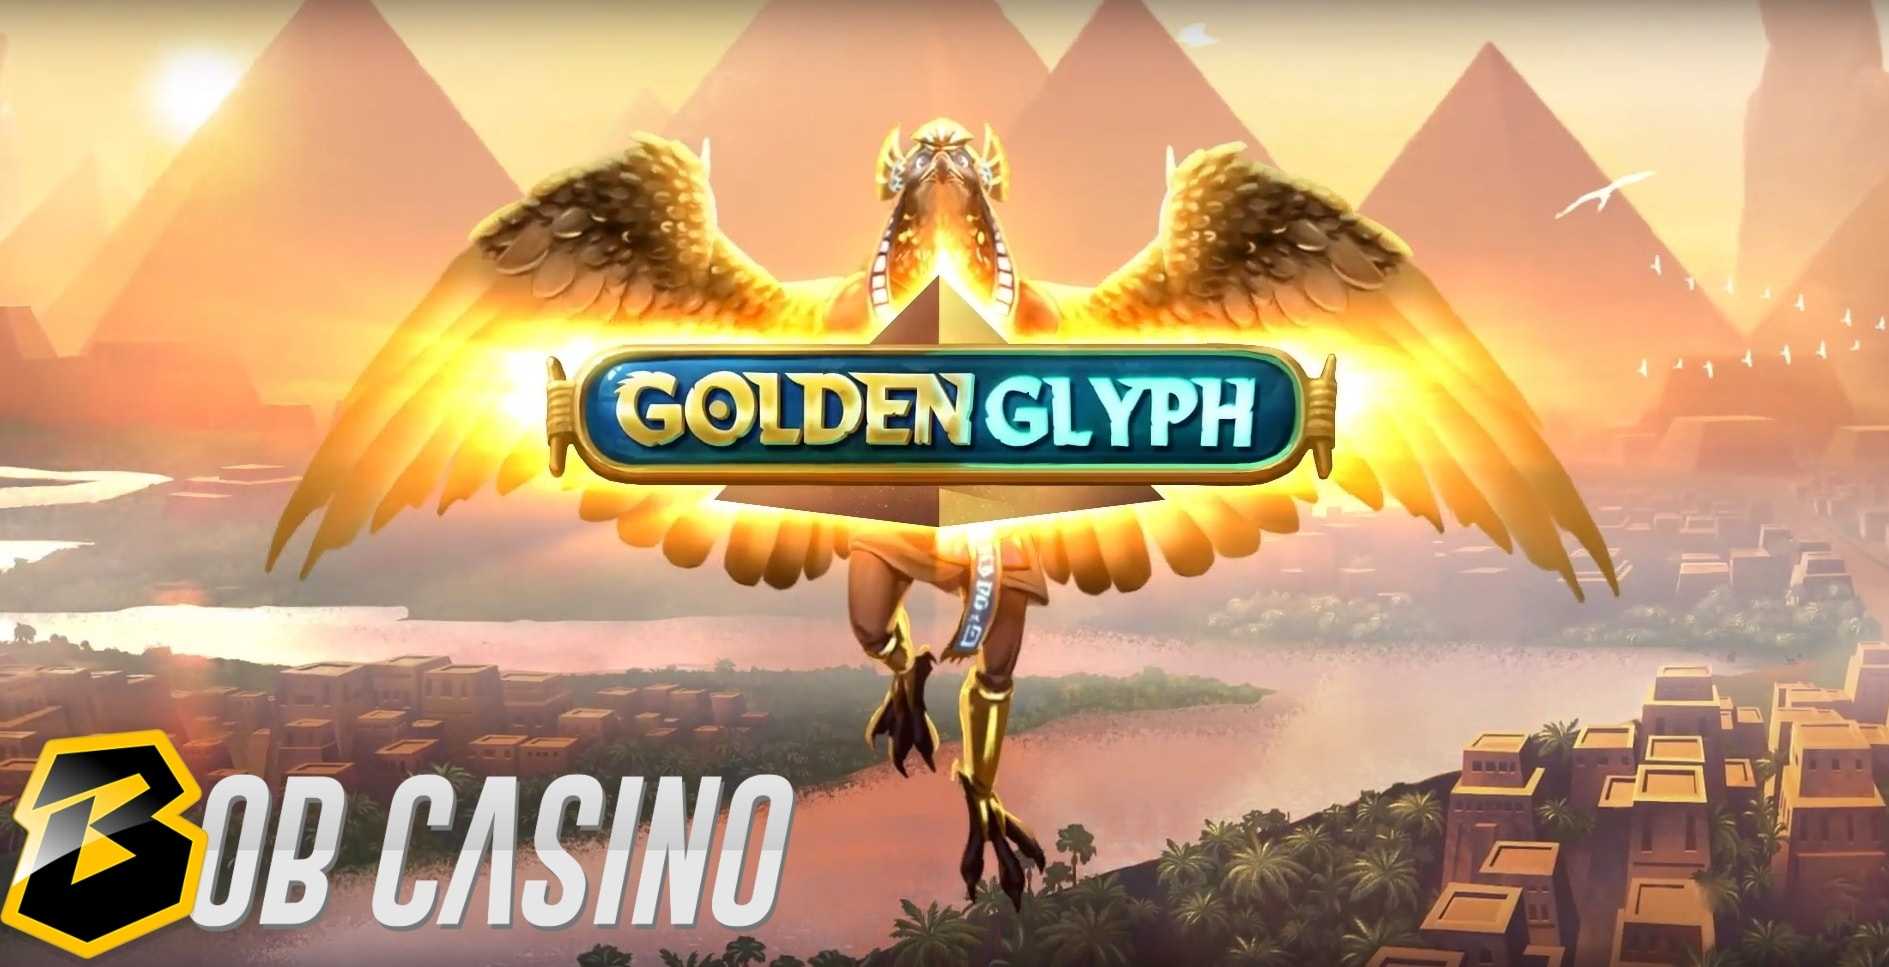 Ancient Egypt background and the glyph in the Golden Glyph slot logo from Quickspin.